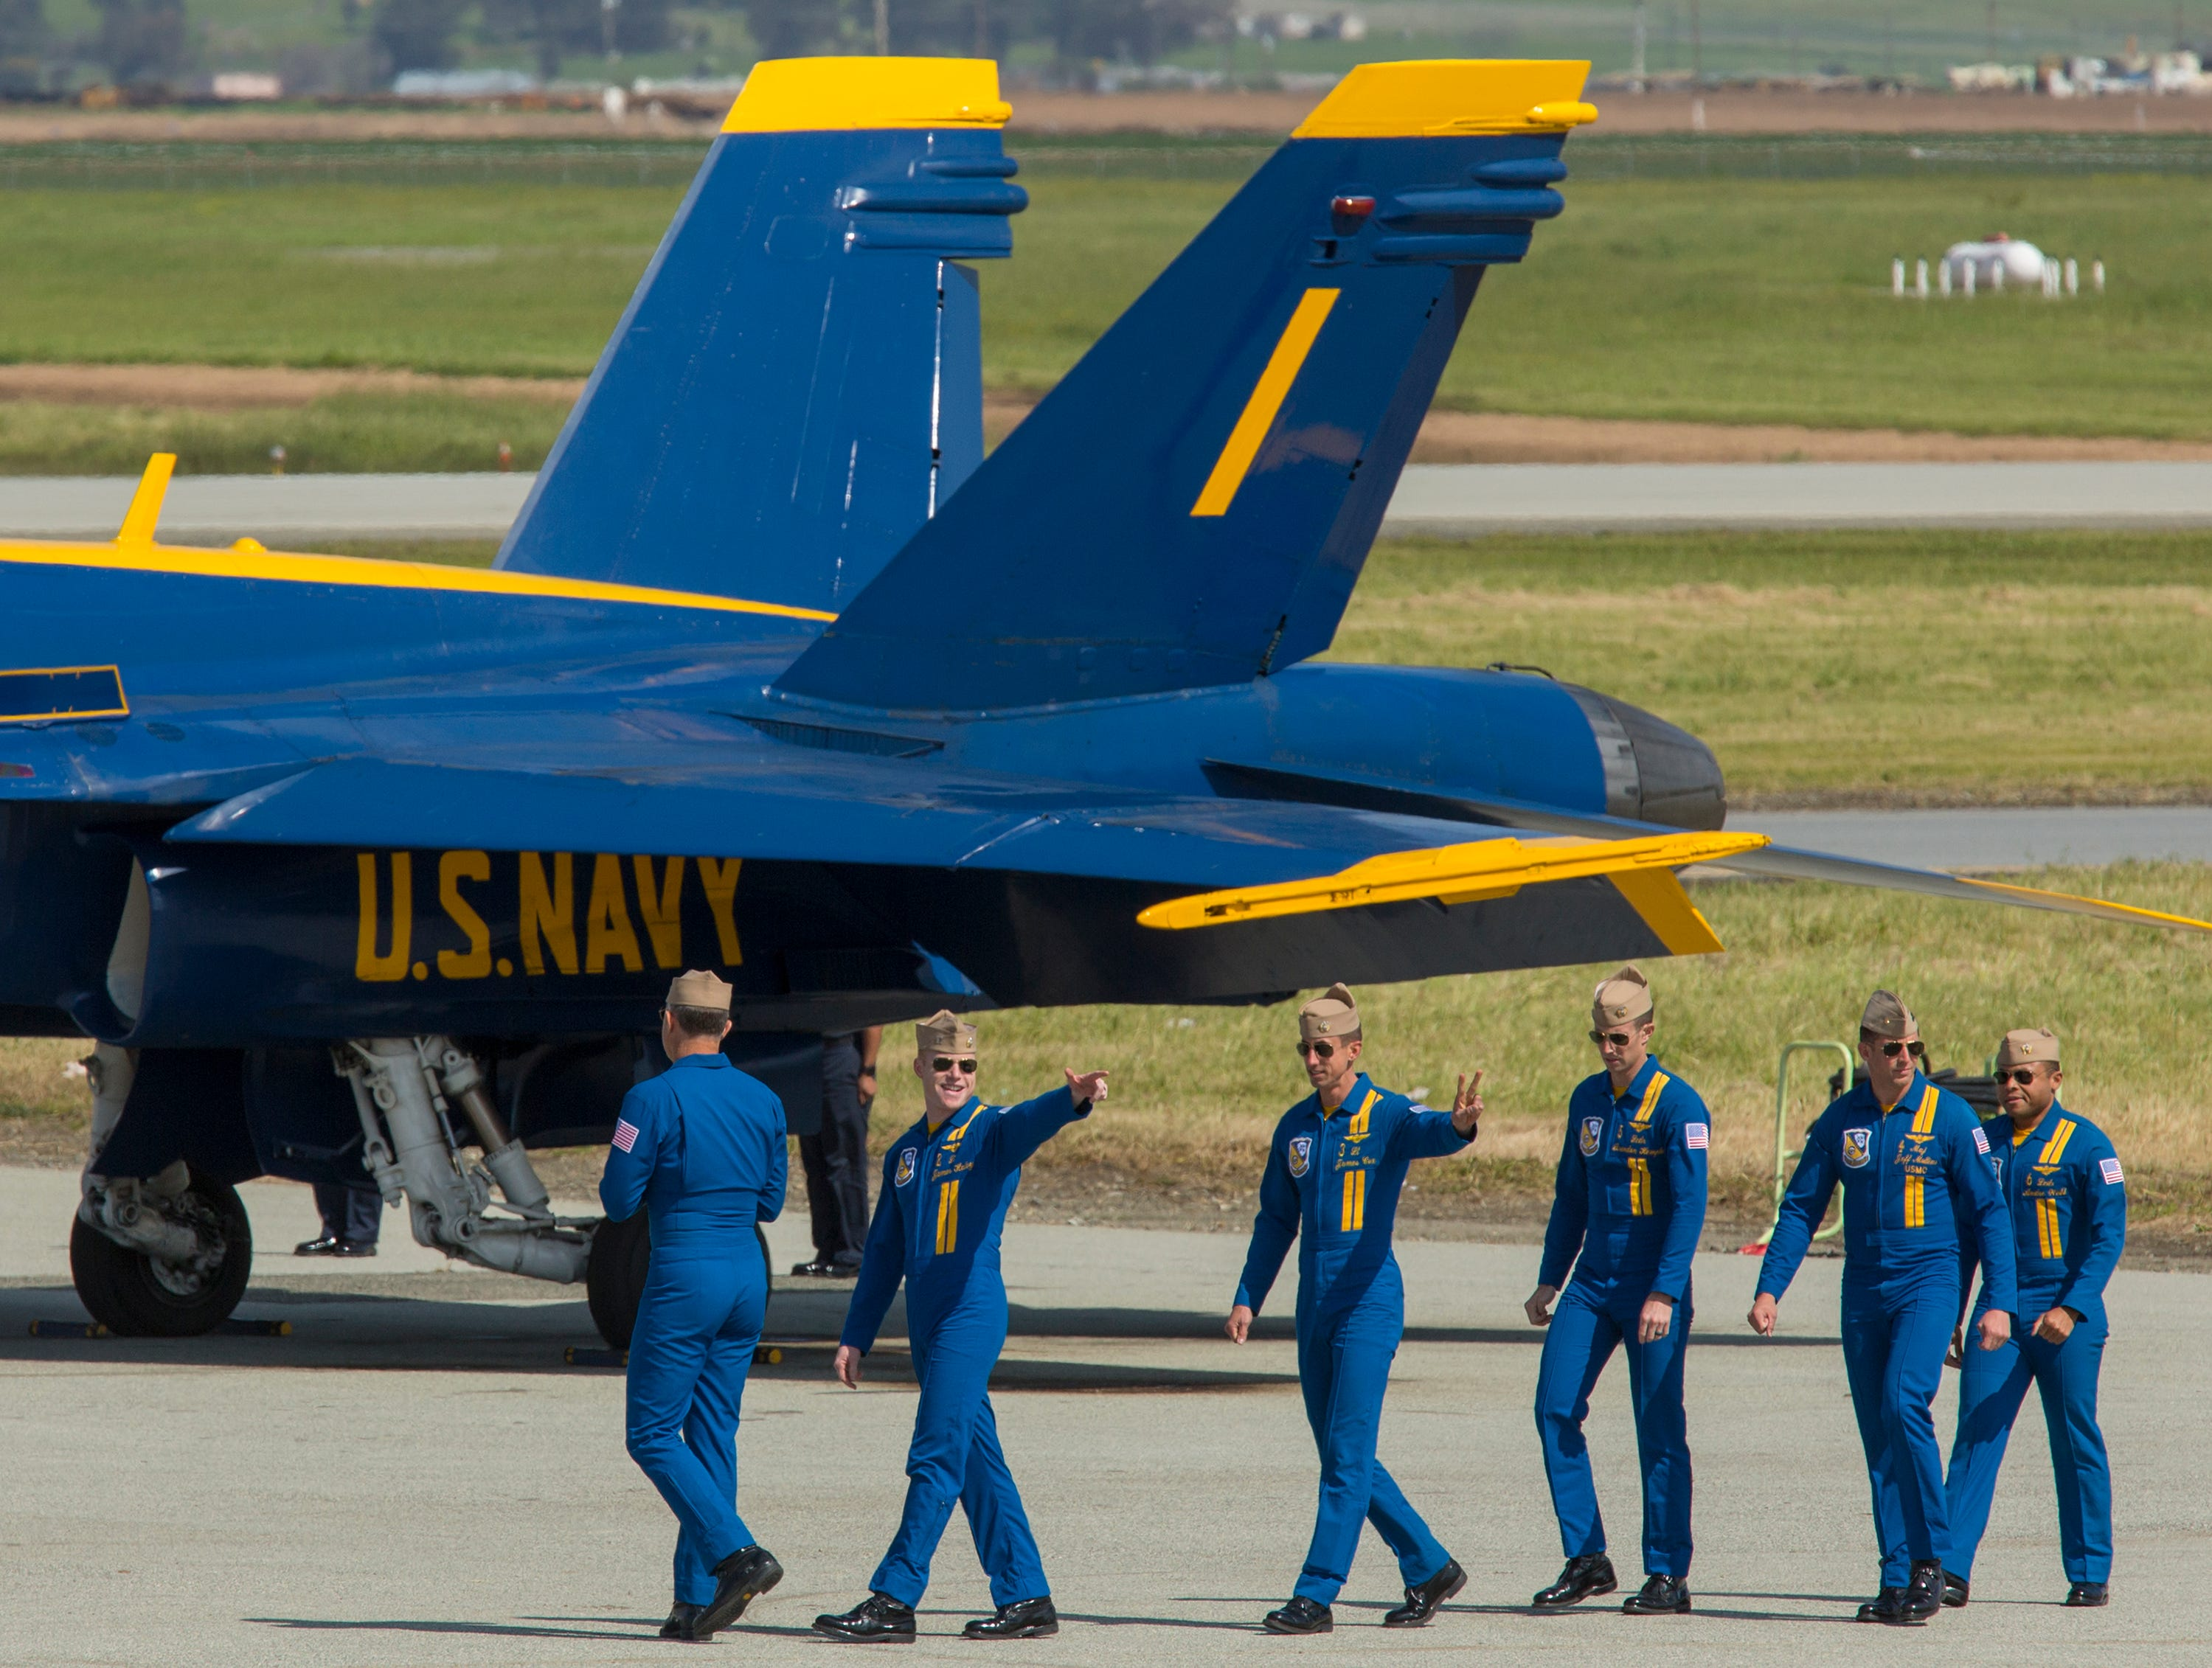 The Blue Angels pilots wave to fans before takeoff during the California International Airshow Salinas at the Salinas Airport on March 23, 2019. (Photo by David Royal)